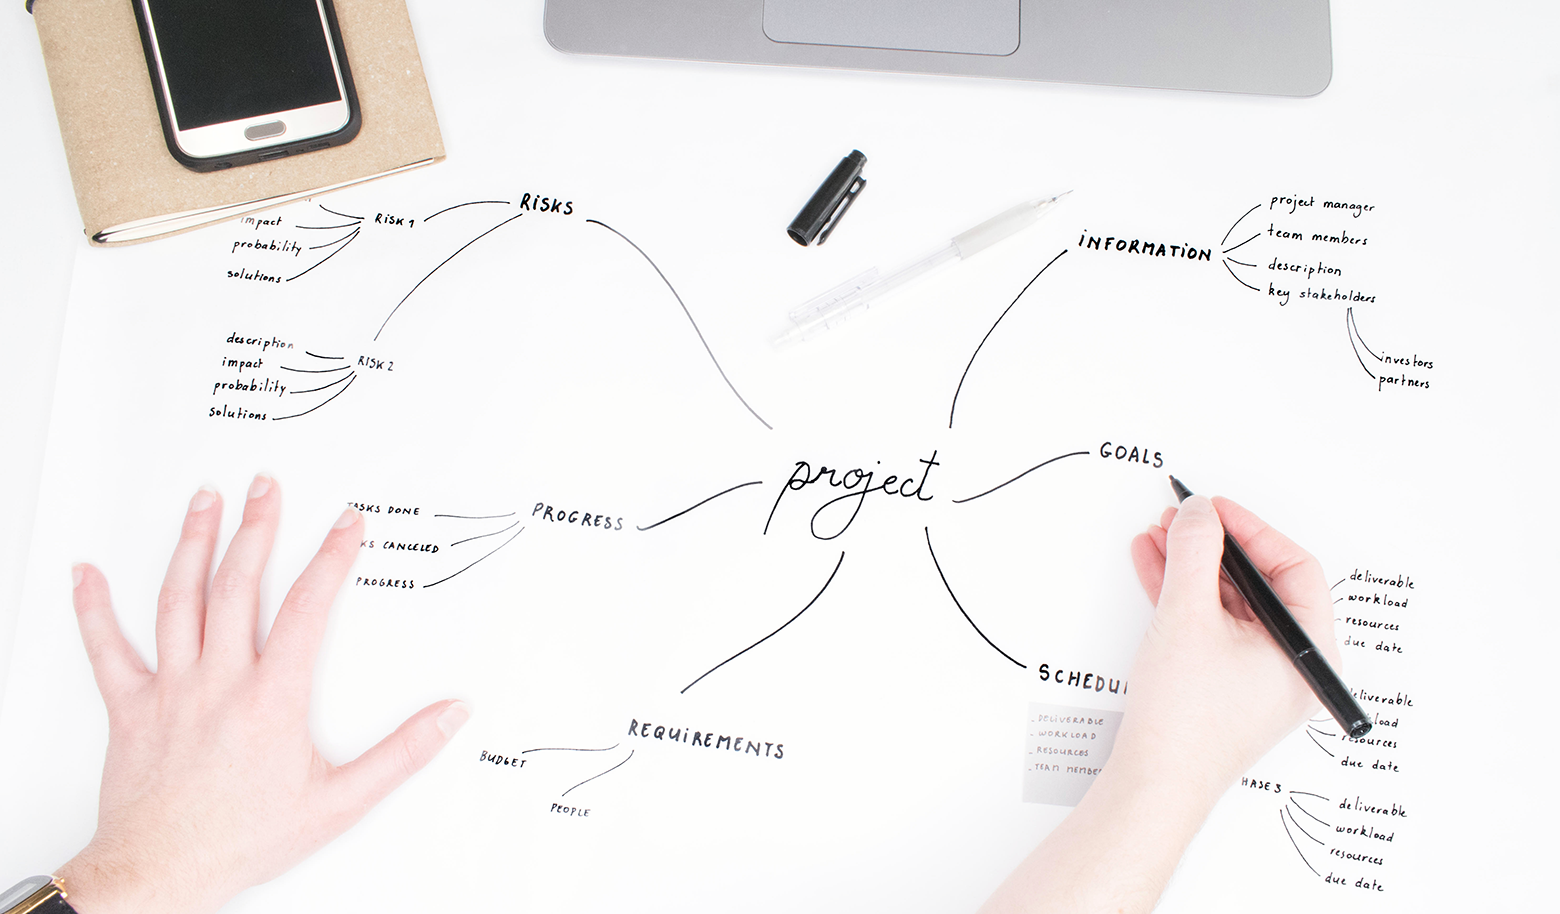 Mind mapping techniques can be applied to project management